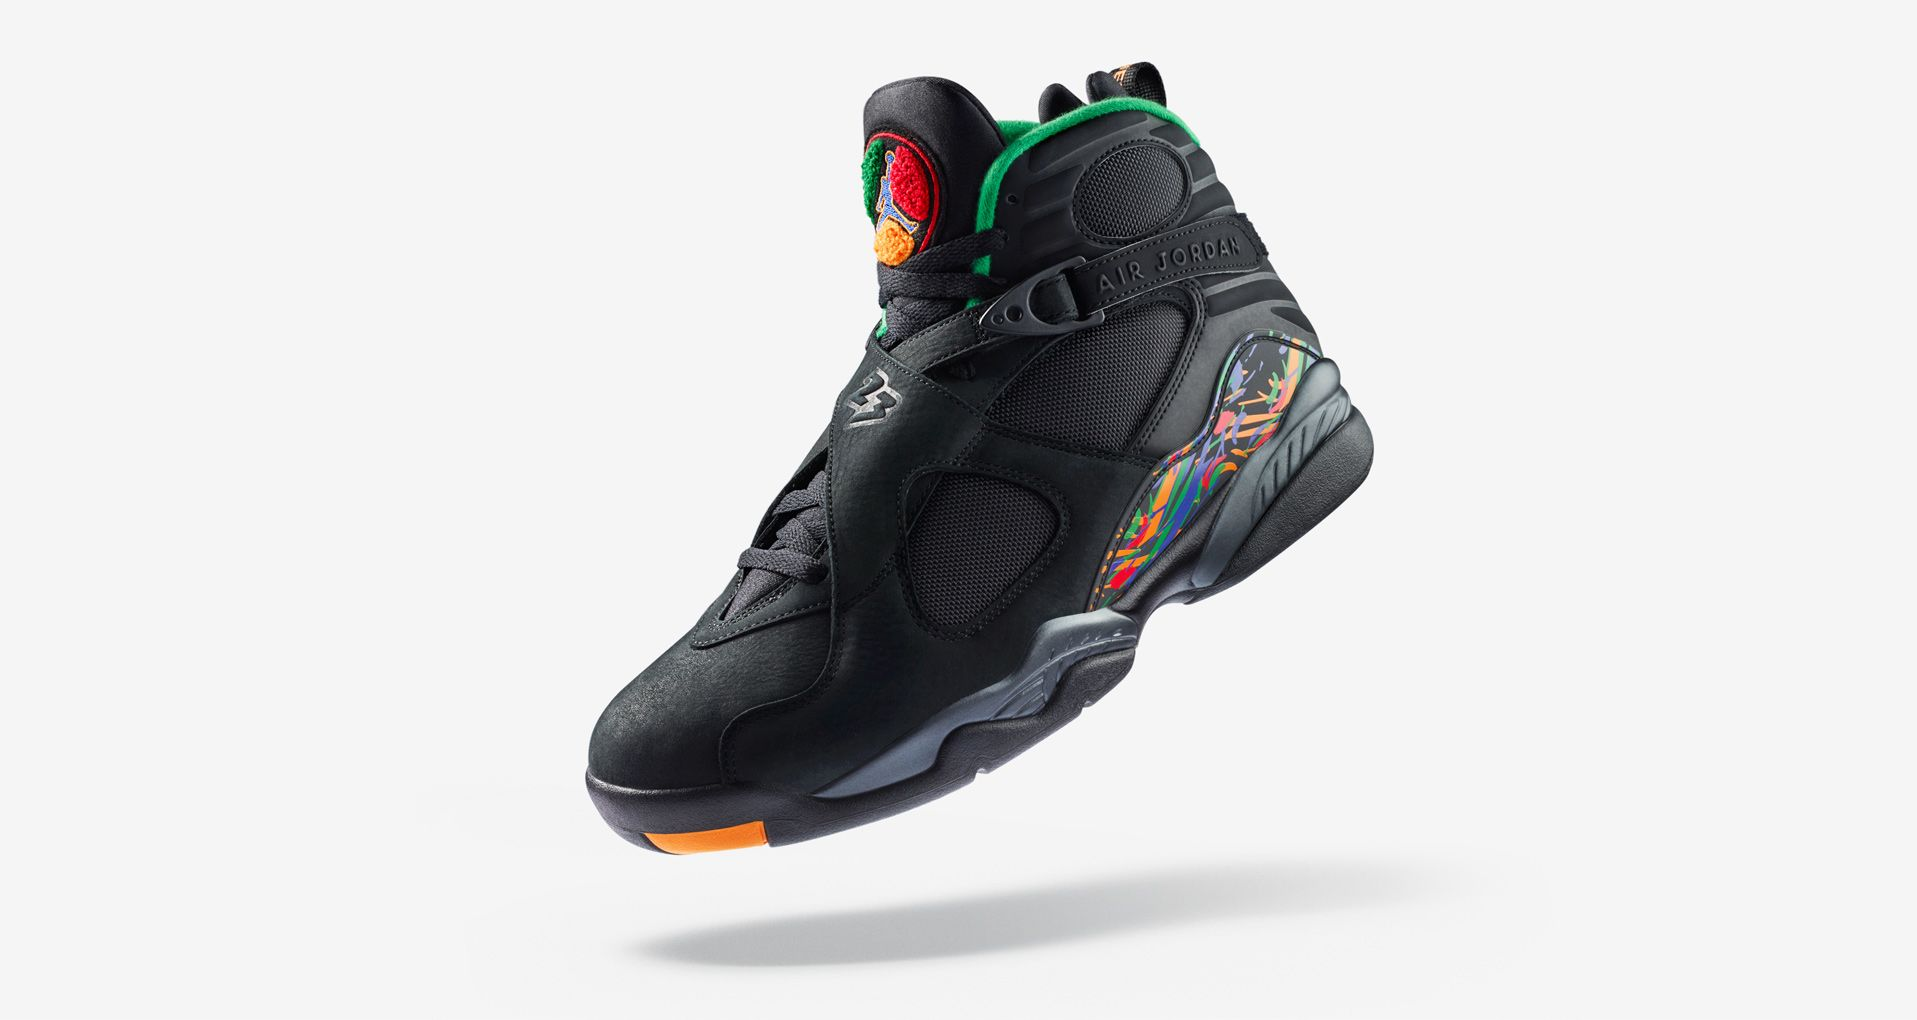 detailed look 8ee0c c55d0 Air Jordan 8 'Black & Orange & Aloe Verde' Release Date ...